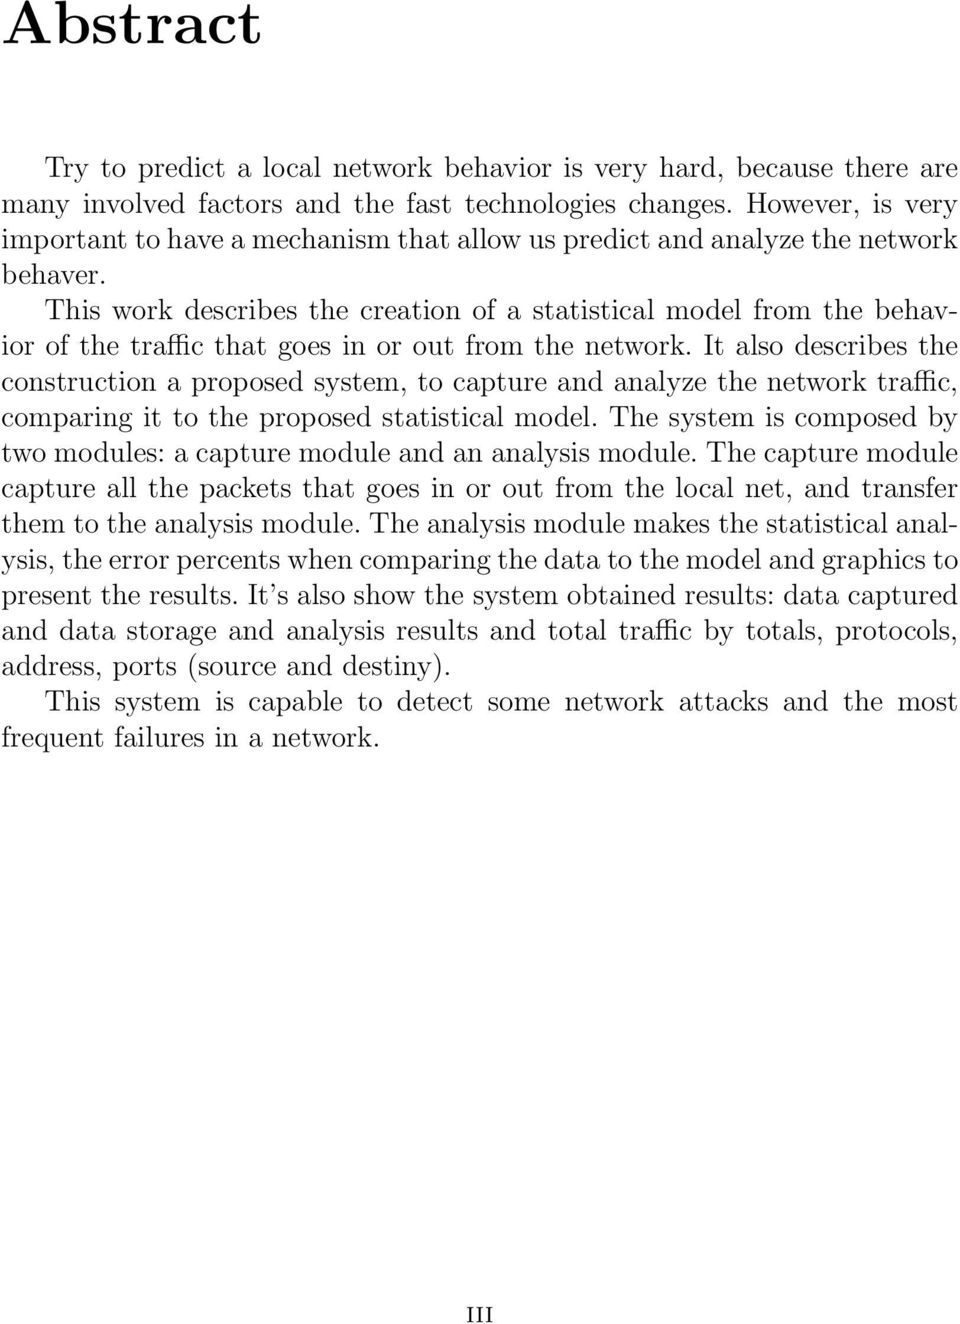 This work describes the creation of a statistical model from the behavior of the traffic that goes in or out from the network.